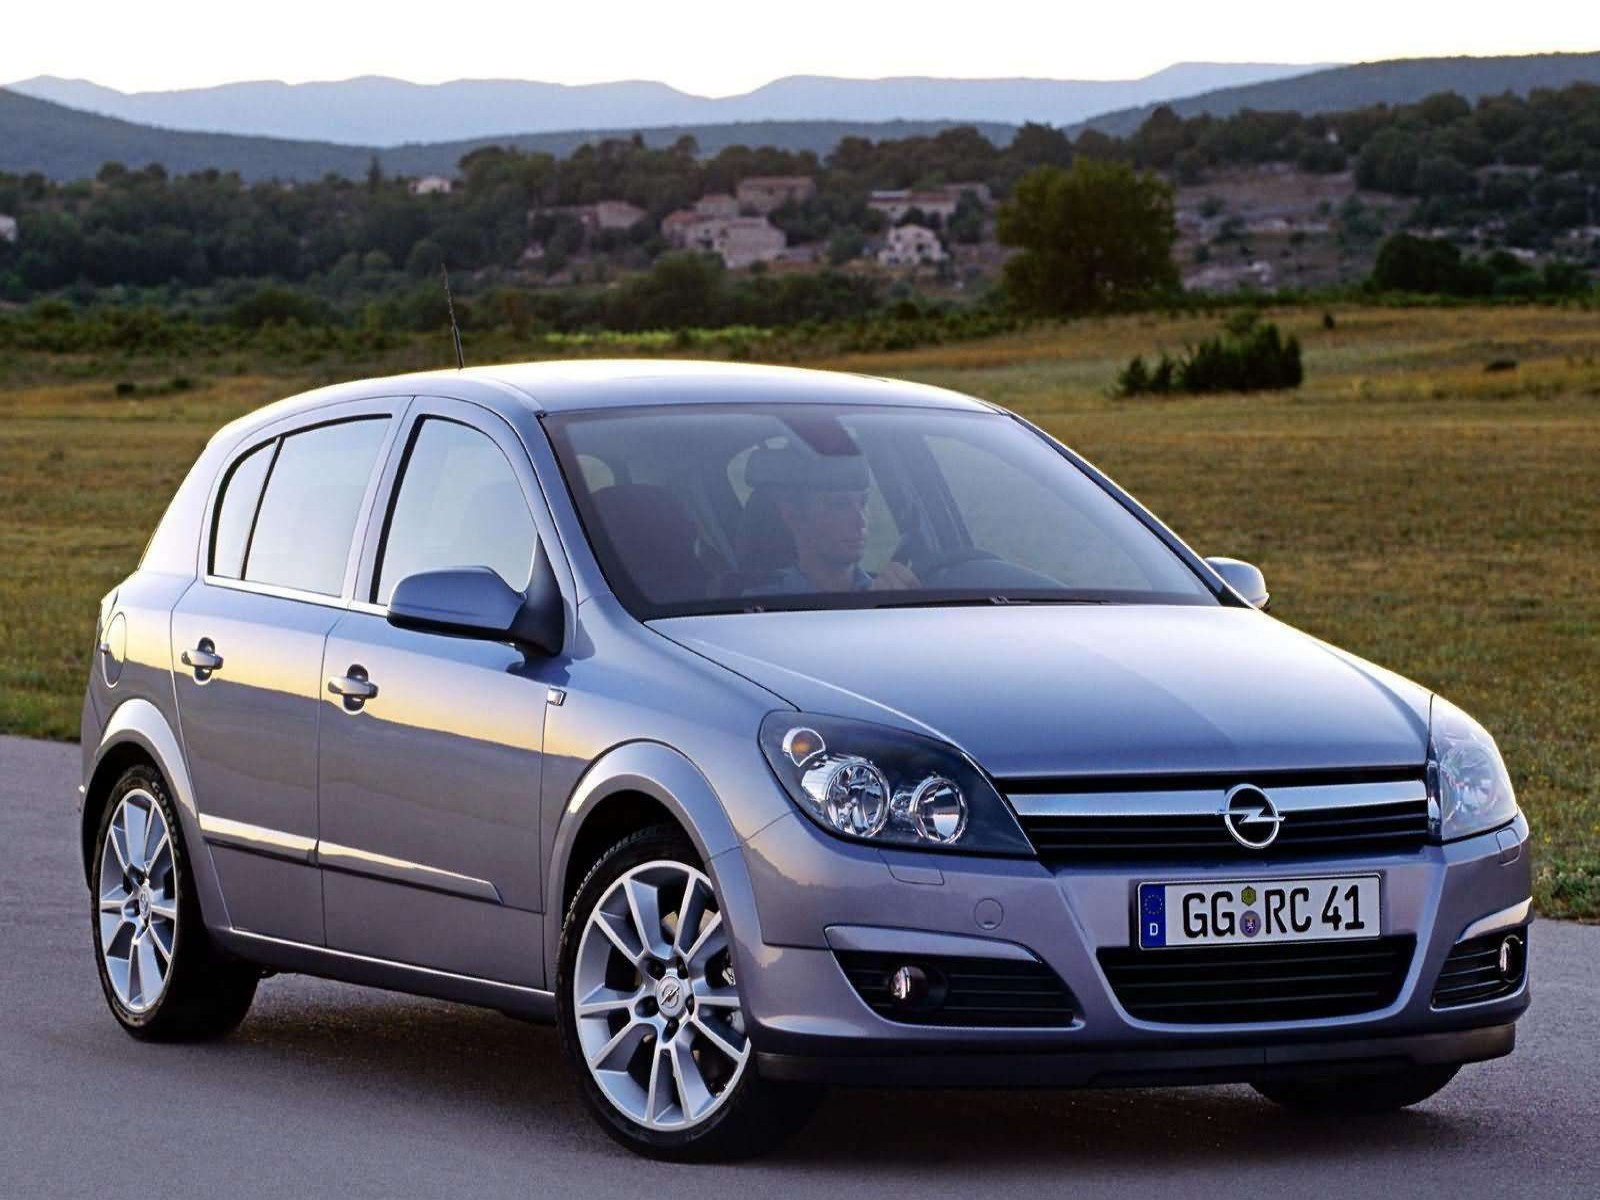 car and car zone opel astra 2004 new cars car reviews car pictures and auto industry trends. Black Bedroom Furniture Sets. Home Design Ideas